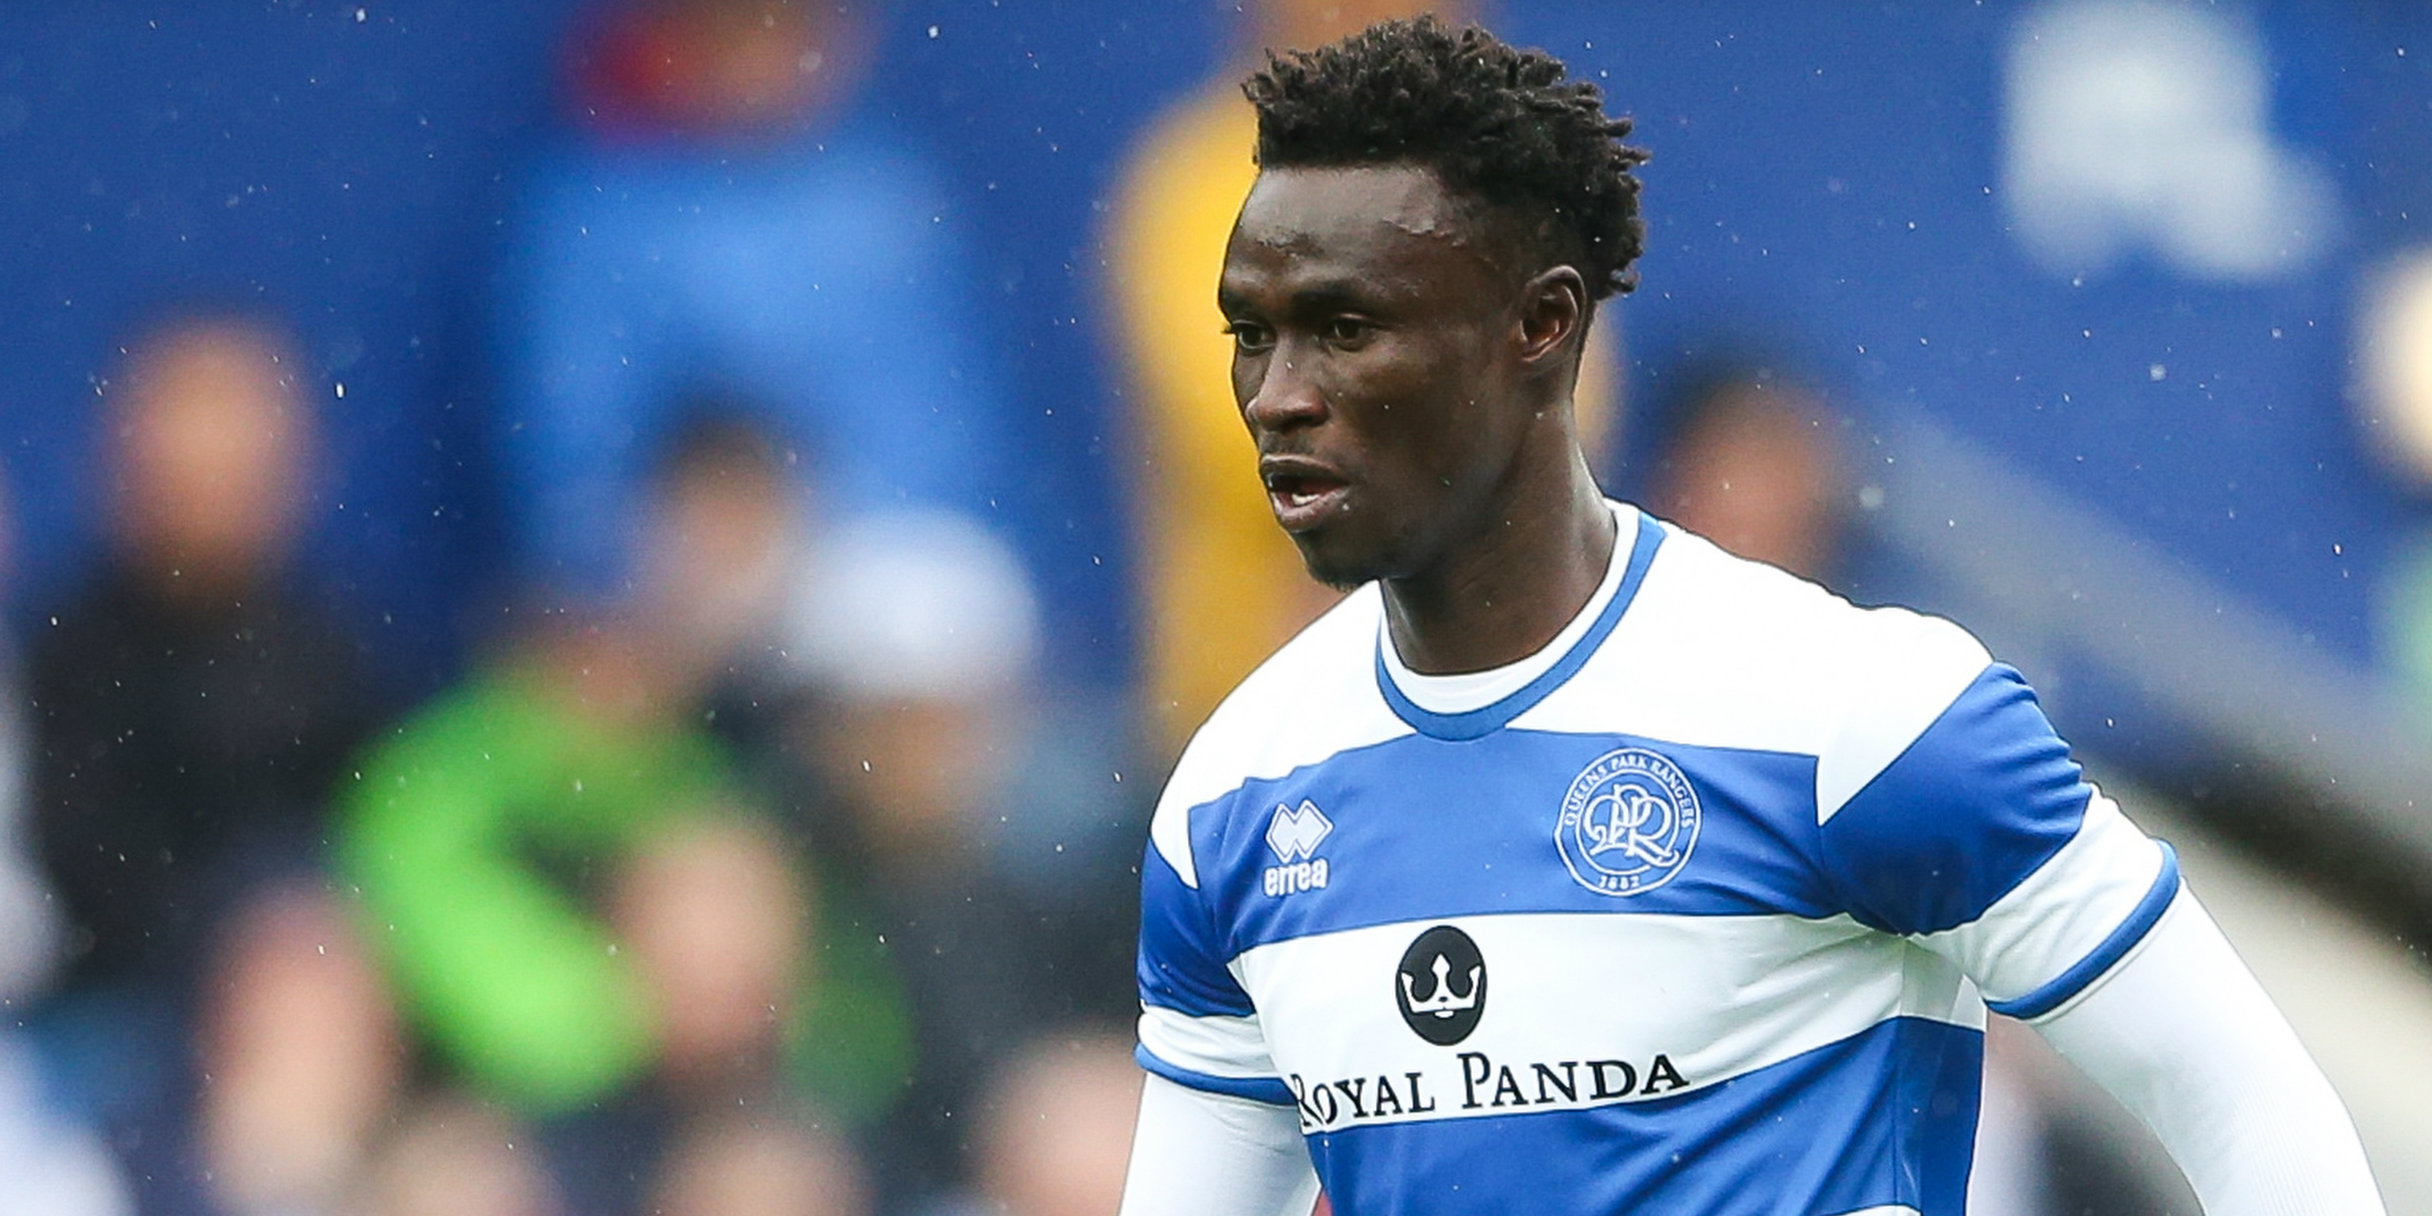 QPR's Sylla passed fit for Fulham game